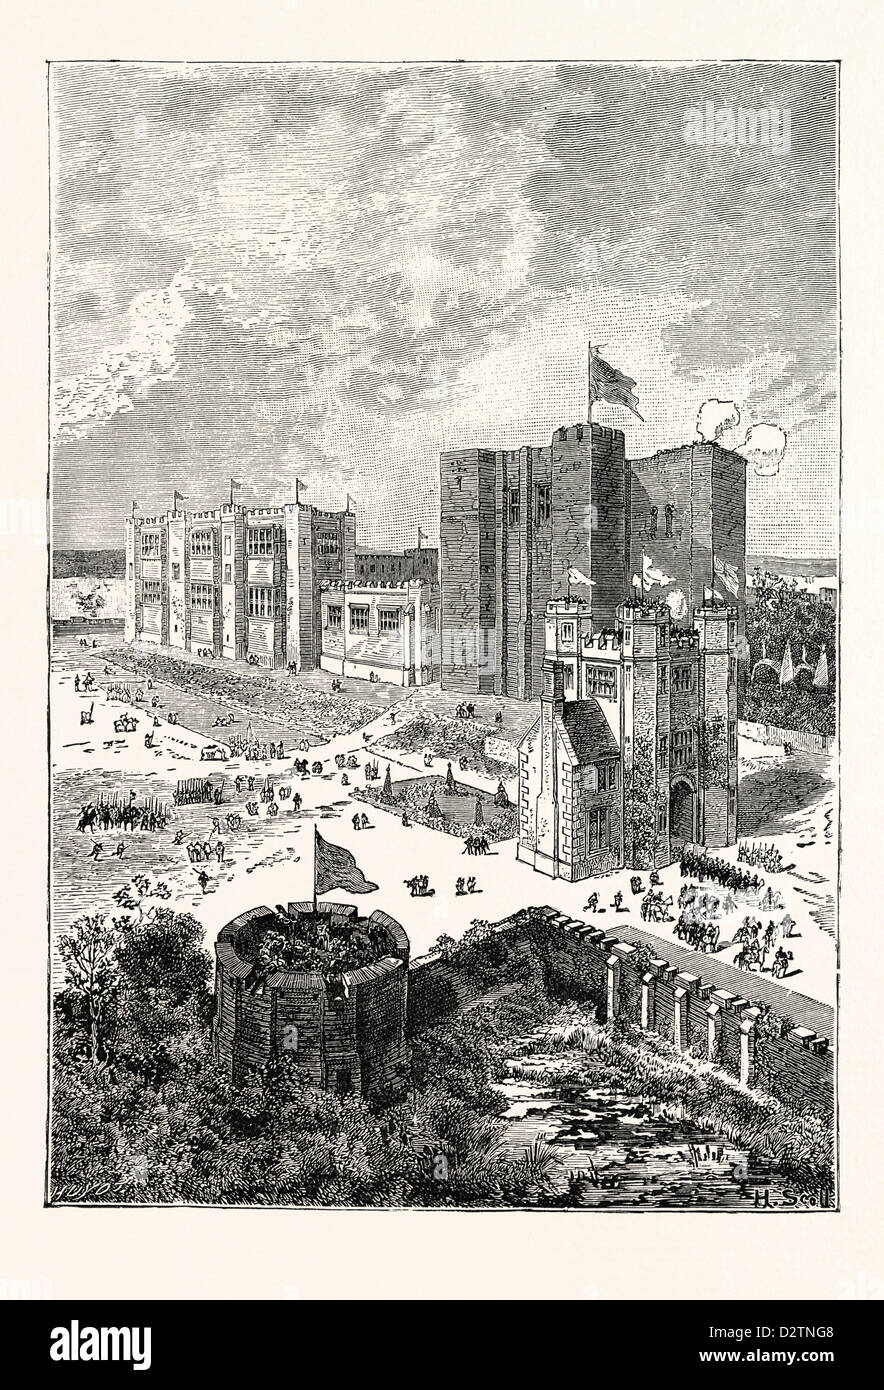 KENILWORTH CASTLE IN THE SIXTEENTH CENTURY. - Stock Image